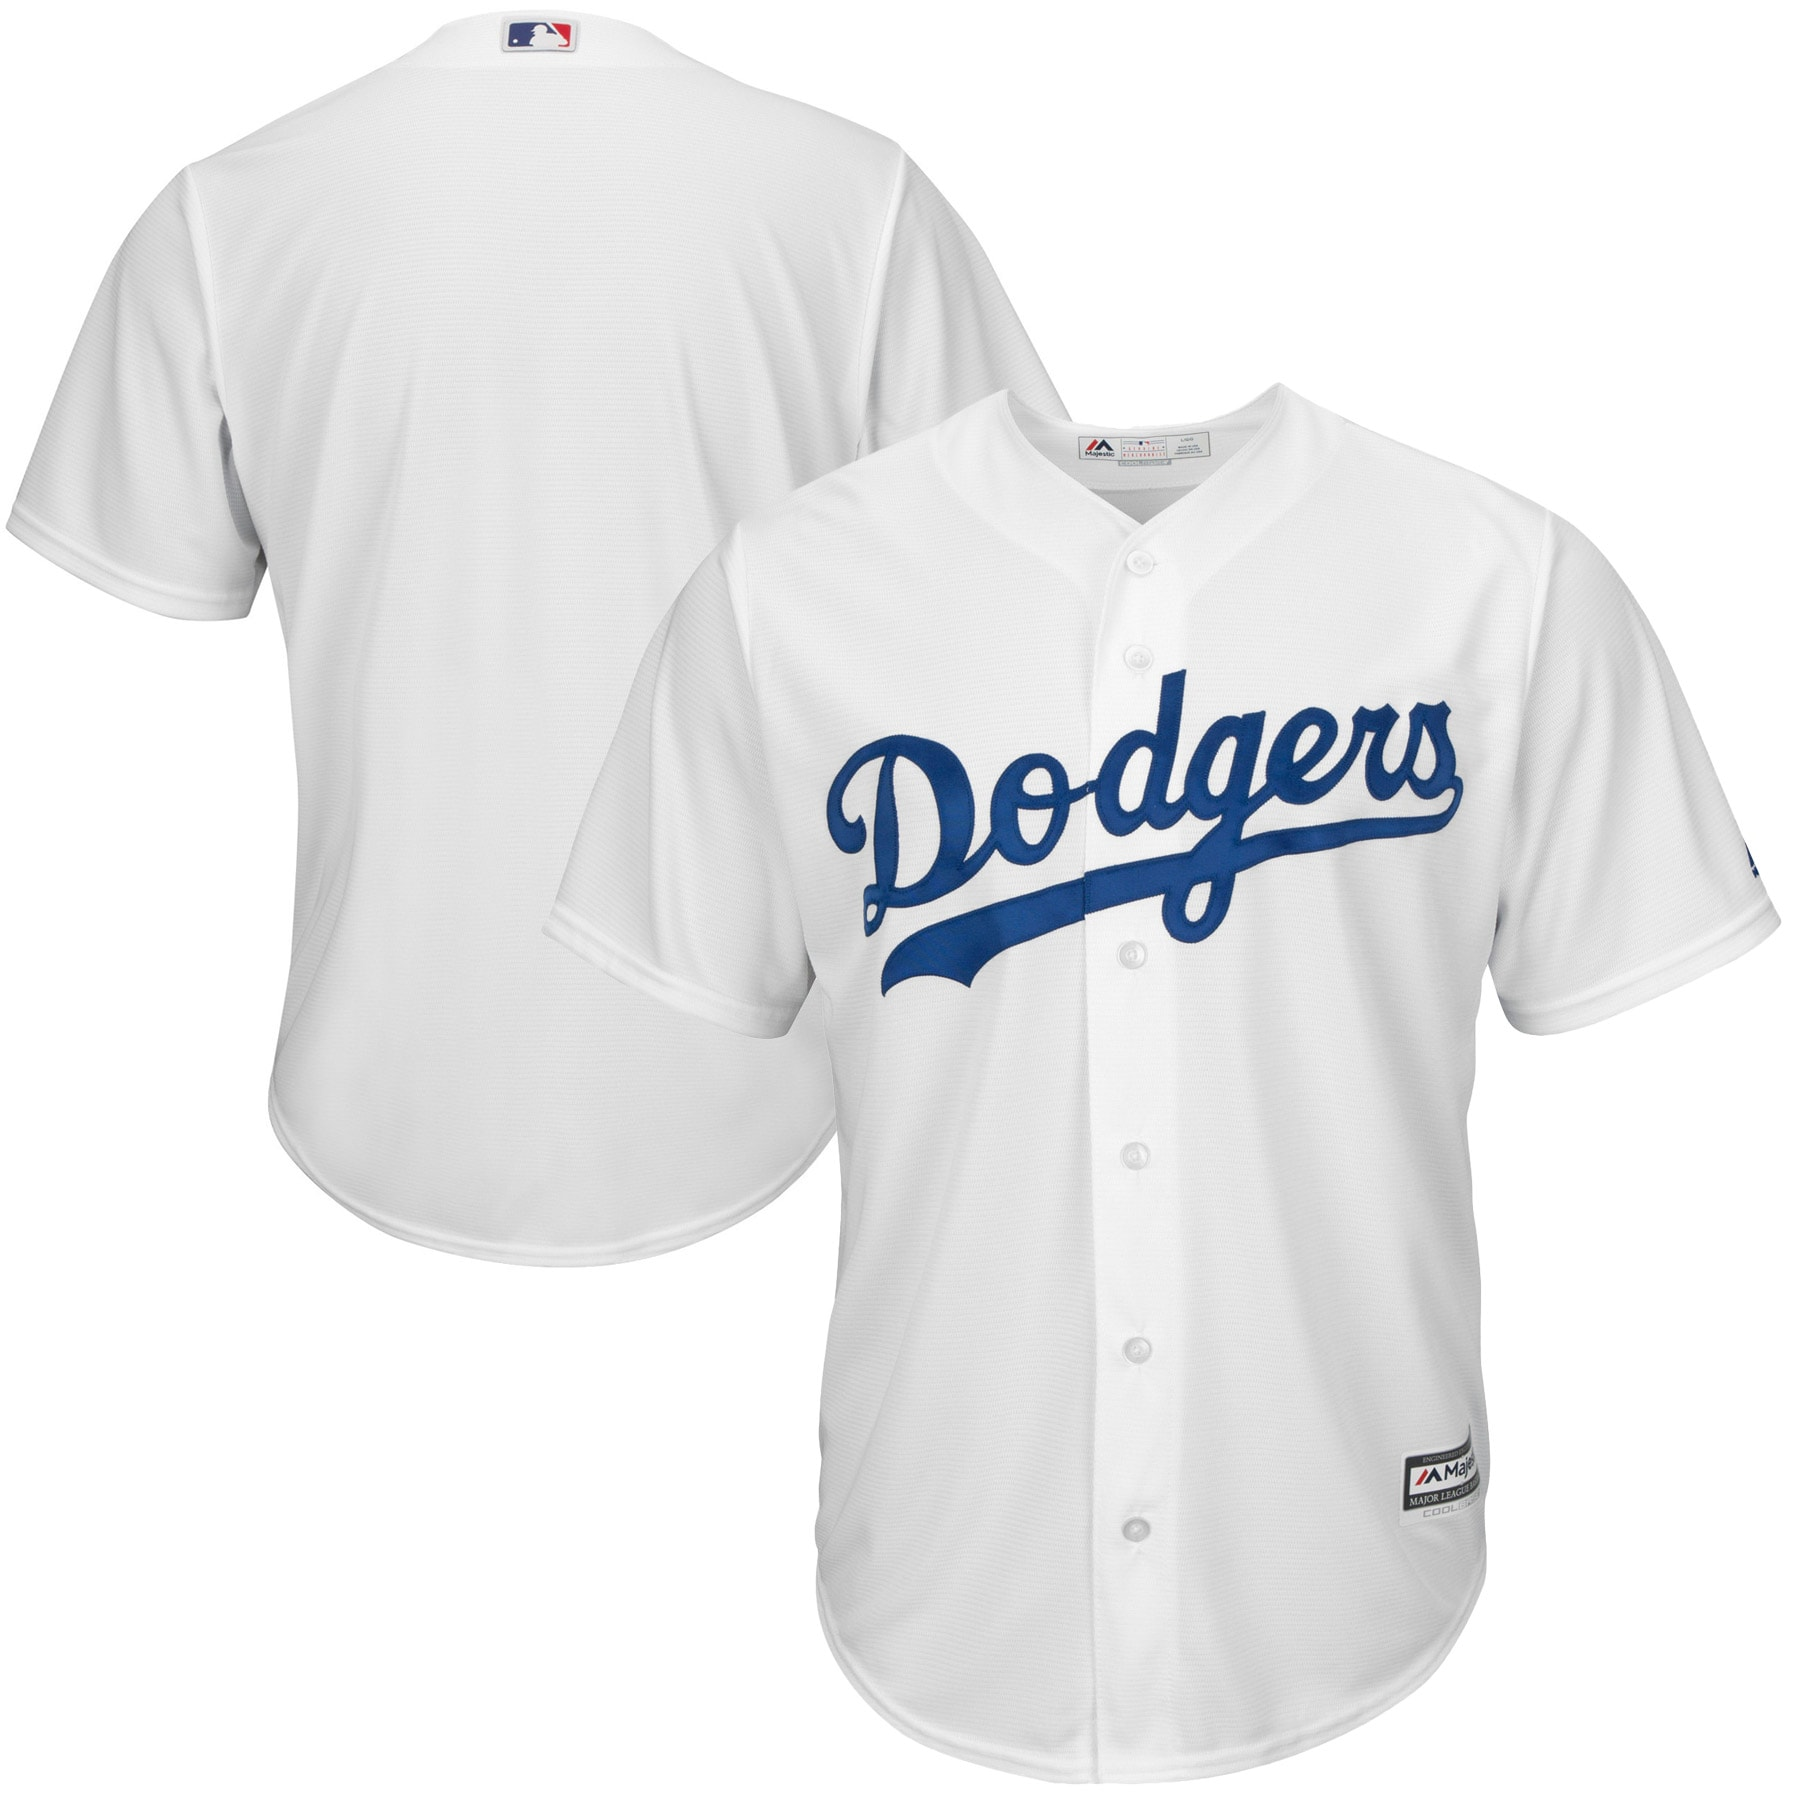 Los Angeles Dodgers Youth Home Replica Blank Team Jersey - White